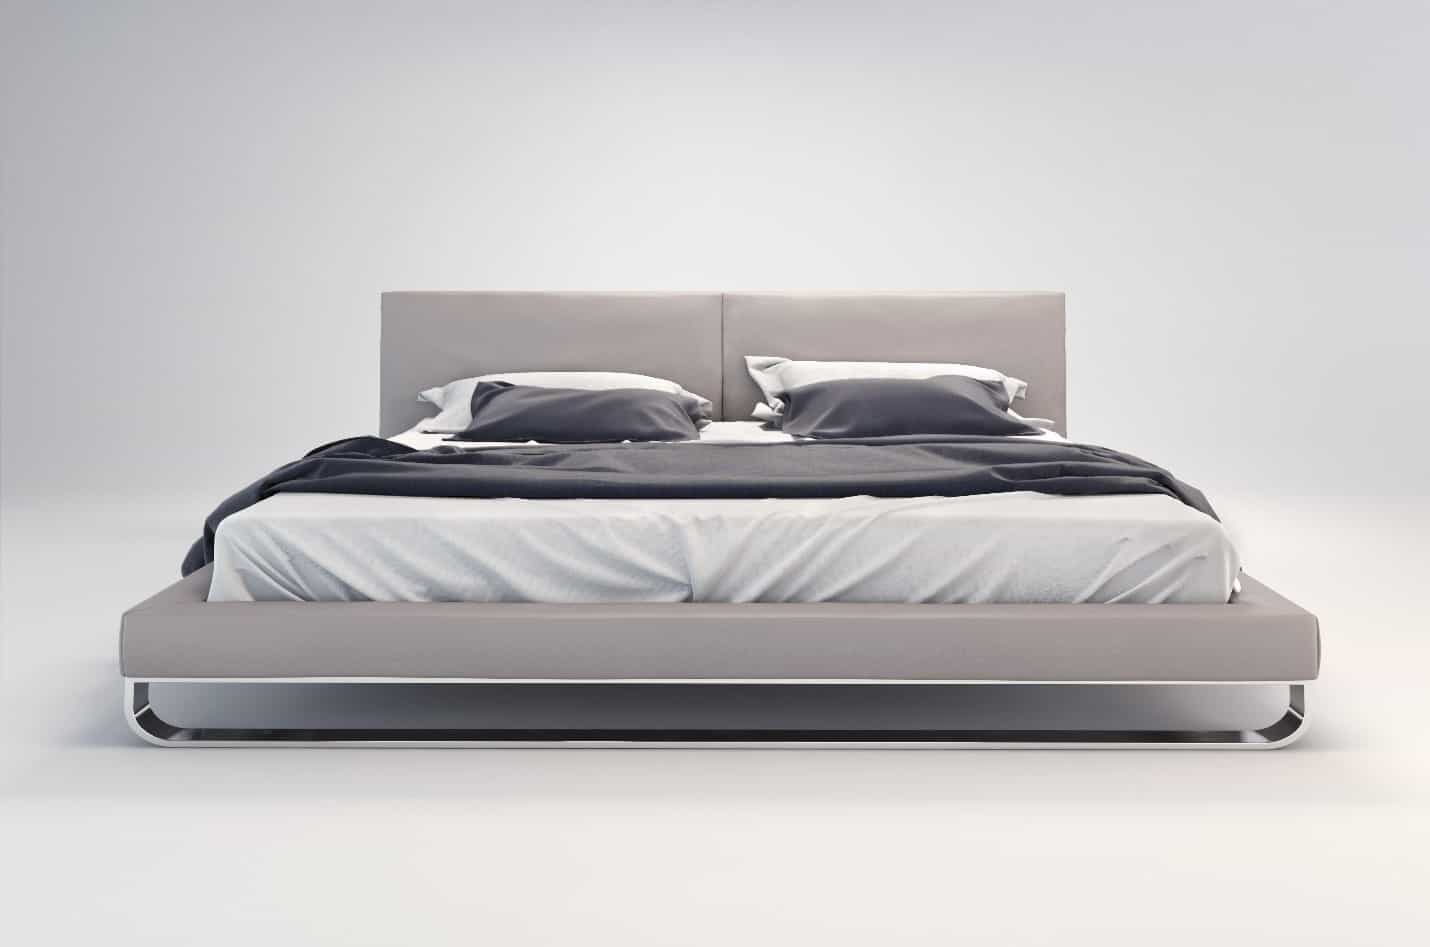 Picture of: How To Raise A Platform Bed With Bed Risers 20 Pg Q A Of All Questions